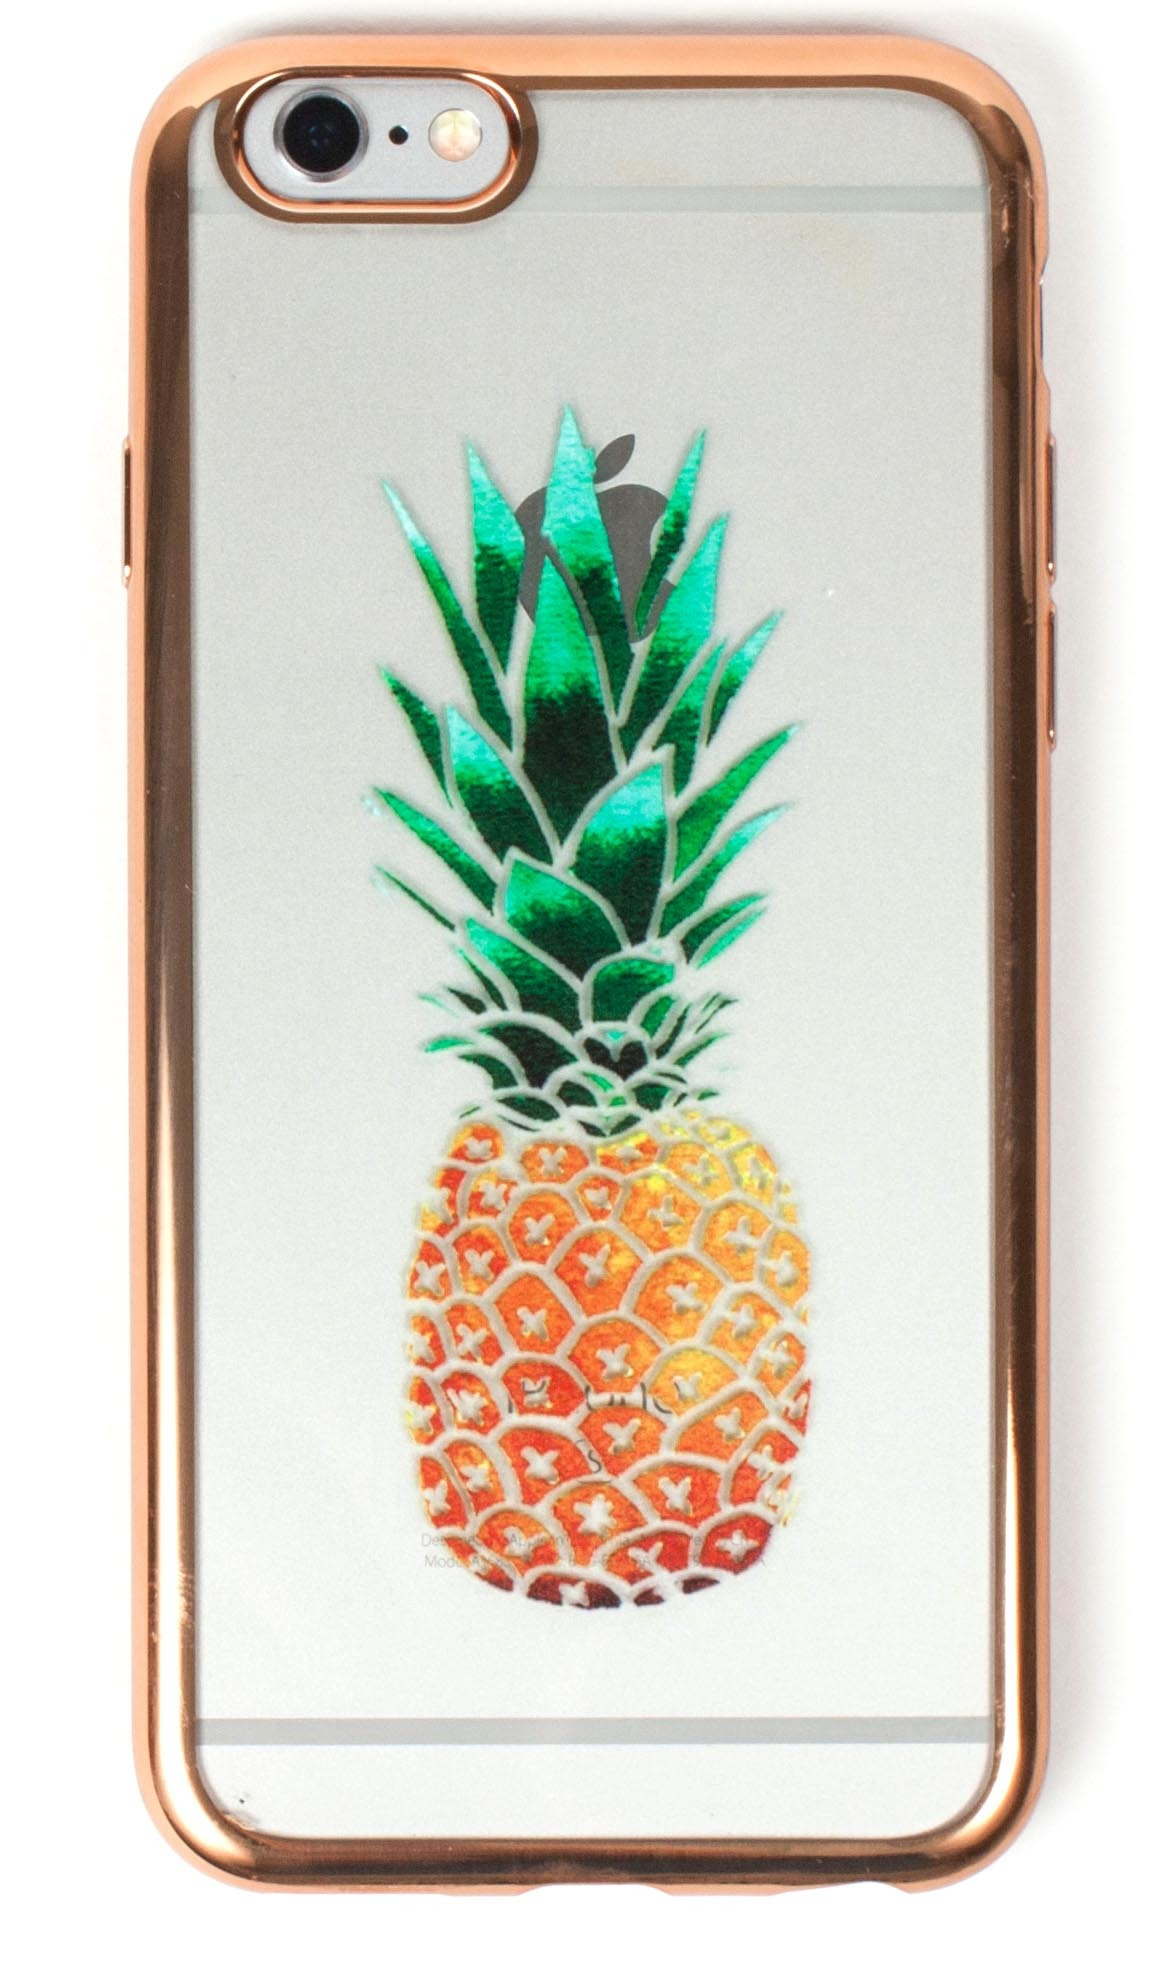 iphone 6 6s case yogacase metaledge cover pineapple. Black Bedroom Furniture Sets. Home Design Ideas